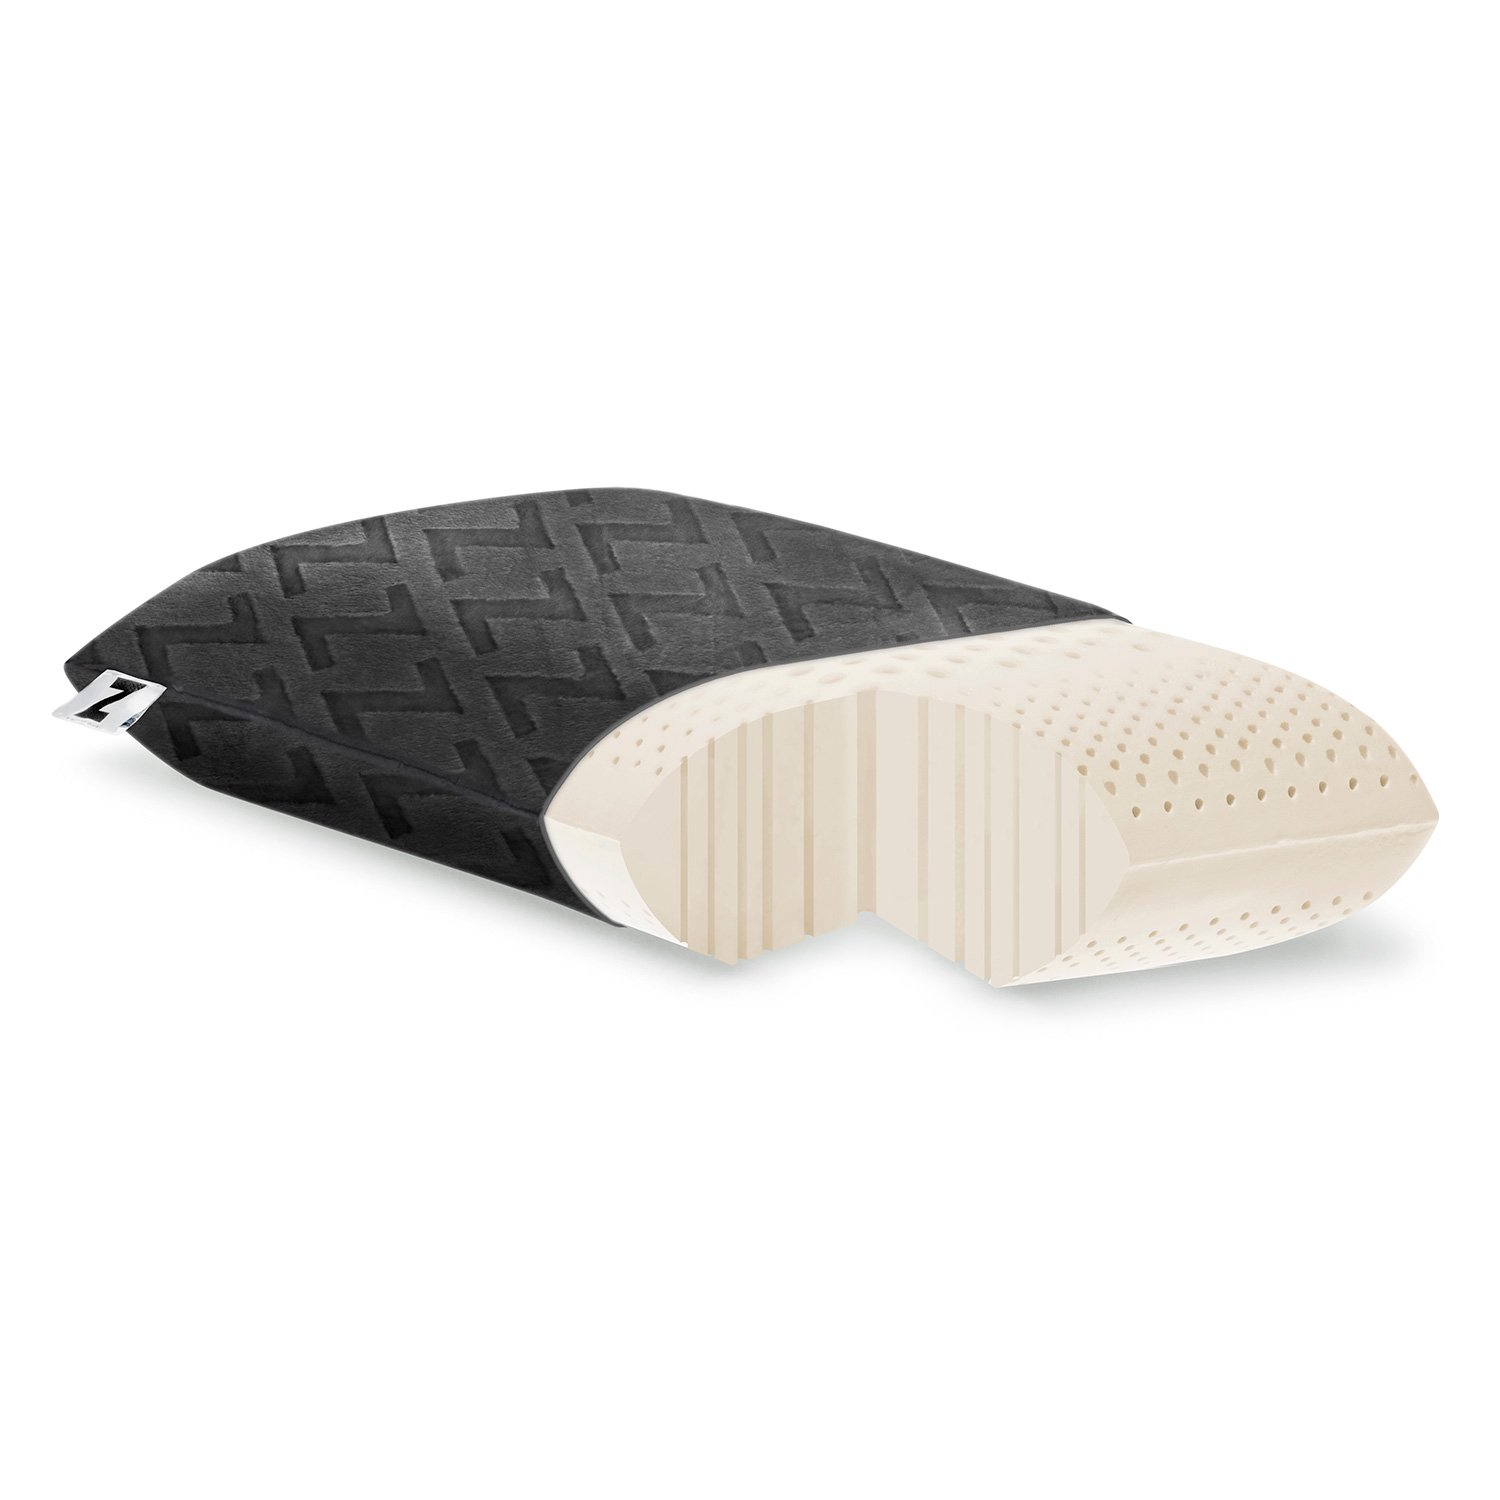 MALOUF Z by Travel Zoned Dough Memory Foam Pillow Removable Rayon from Bamboo Velour Cover 5-Year Warranty CVB Inc ZZTRHPZD